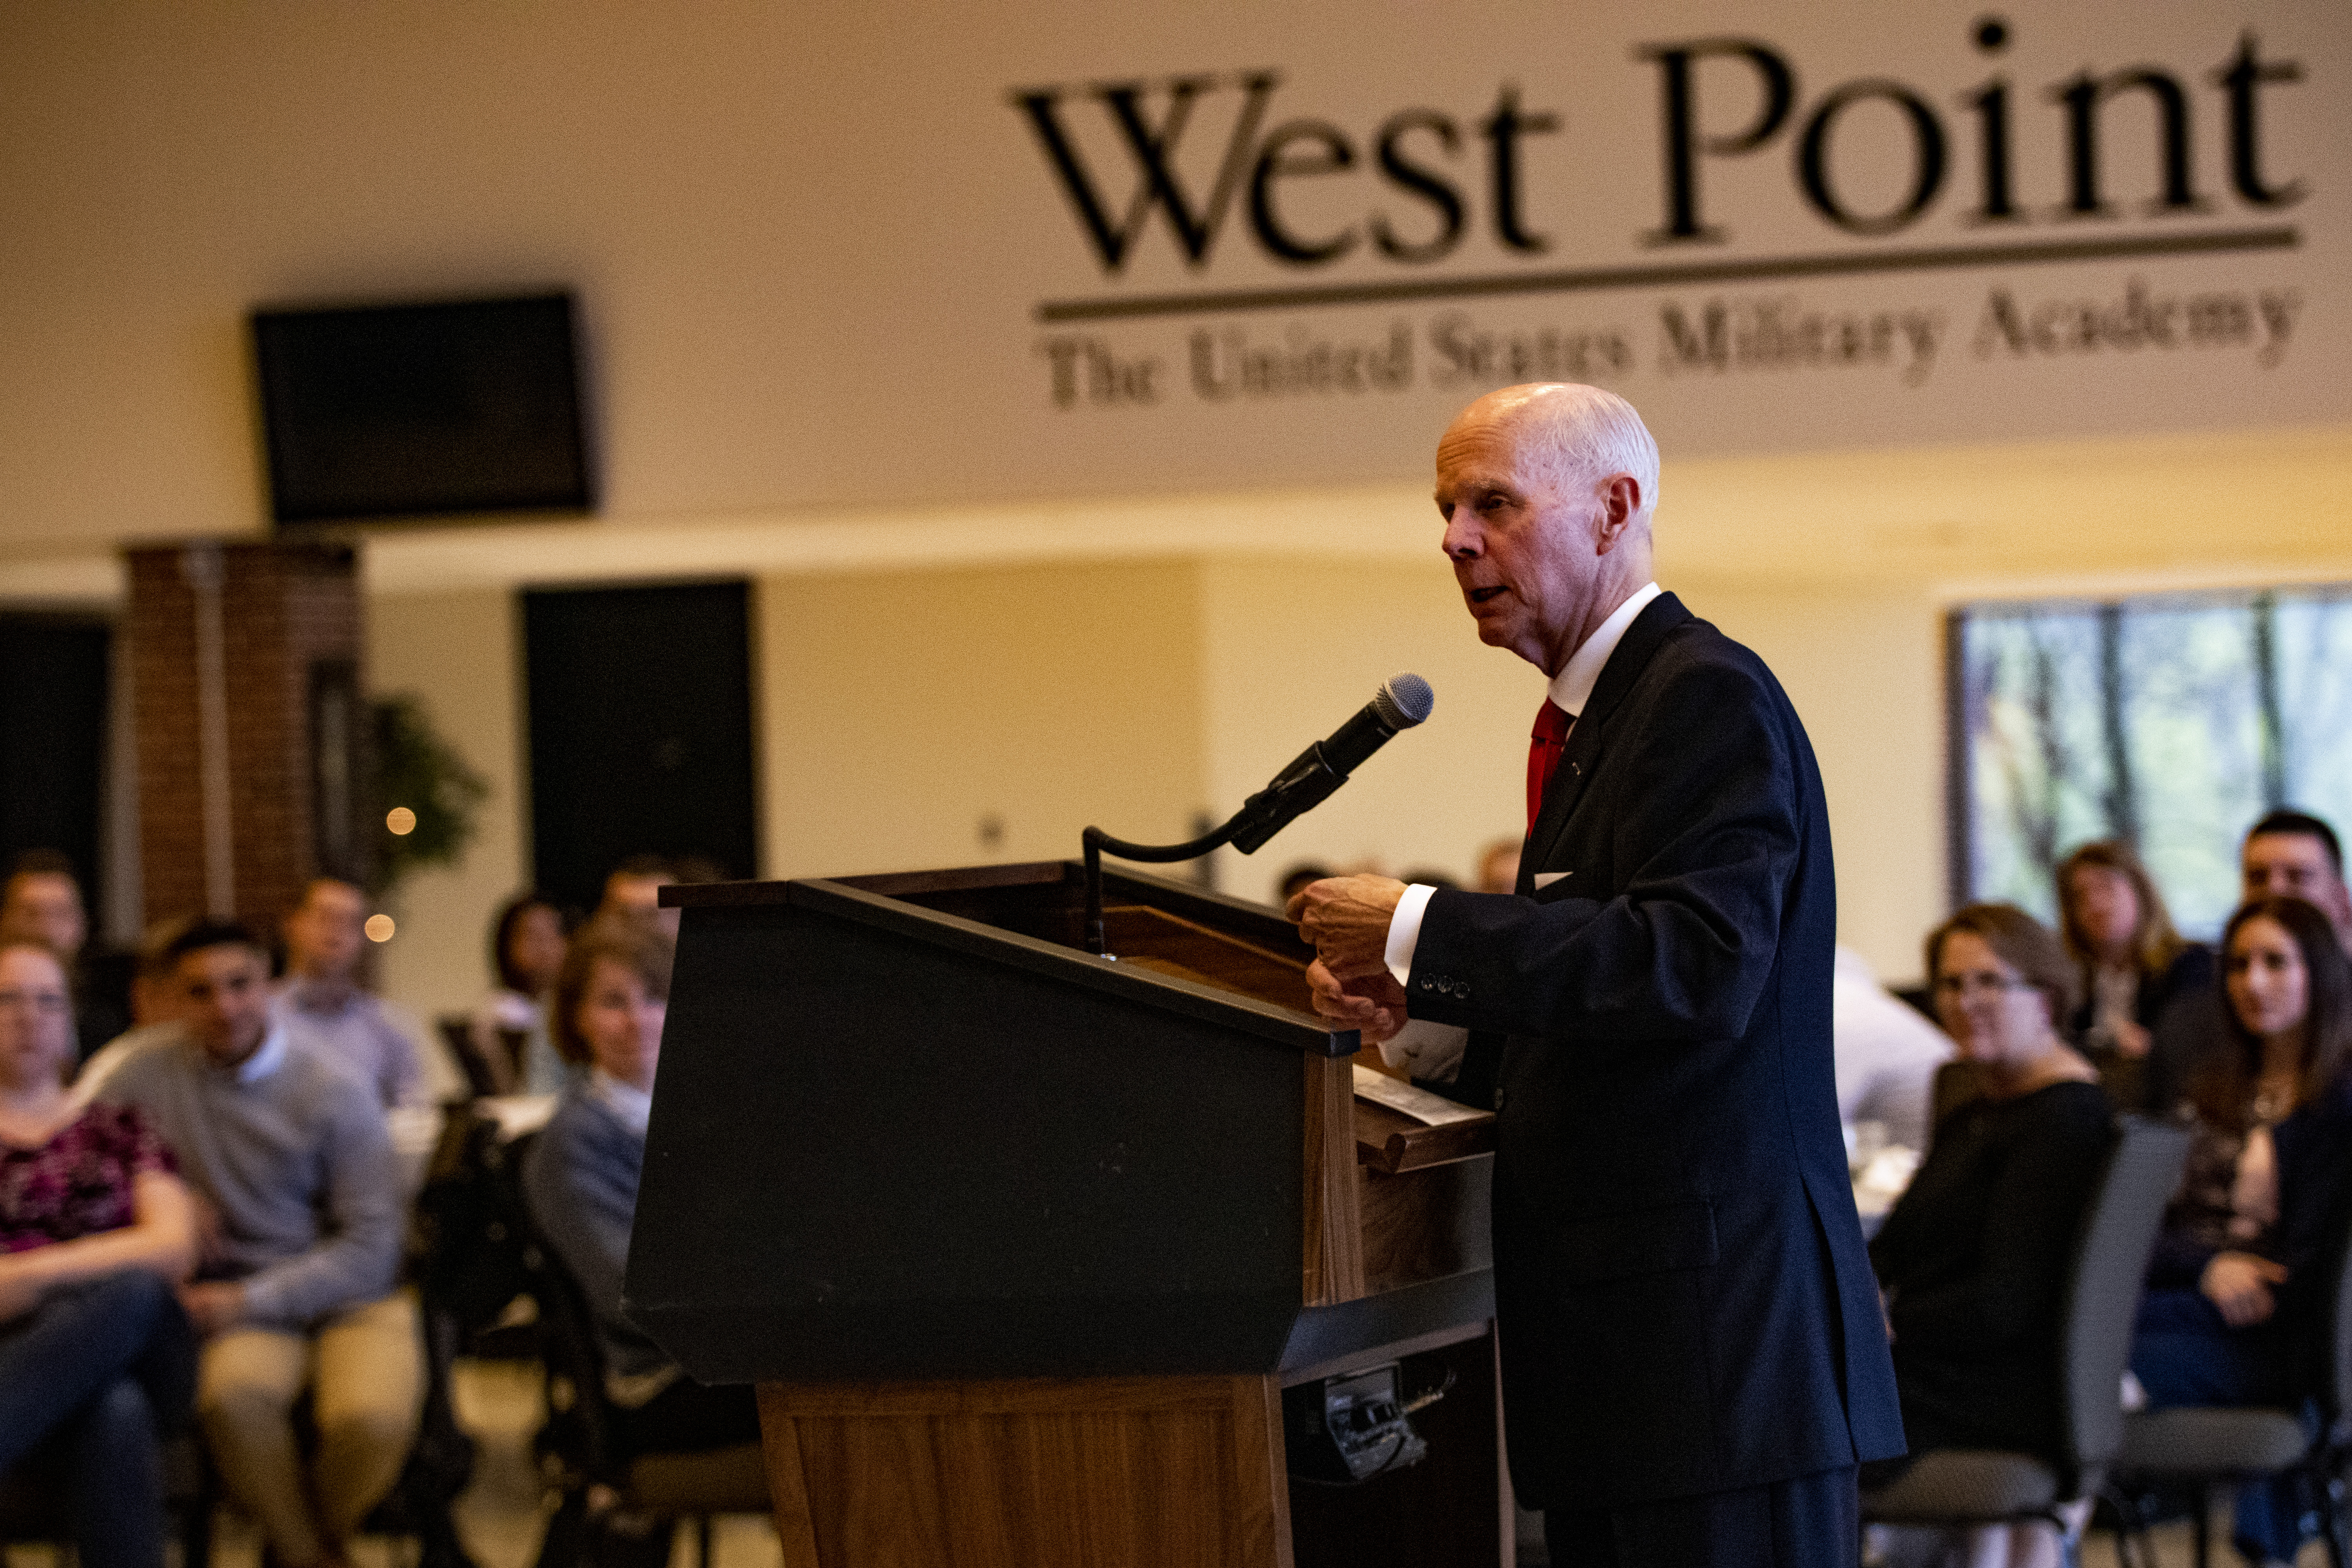 Elder Lance B. Wickman speaks to Young Single Adults during May 4, 2019, gathering at the United States Military Academy in West Point, New York.